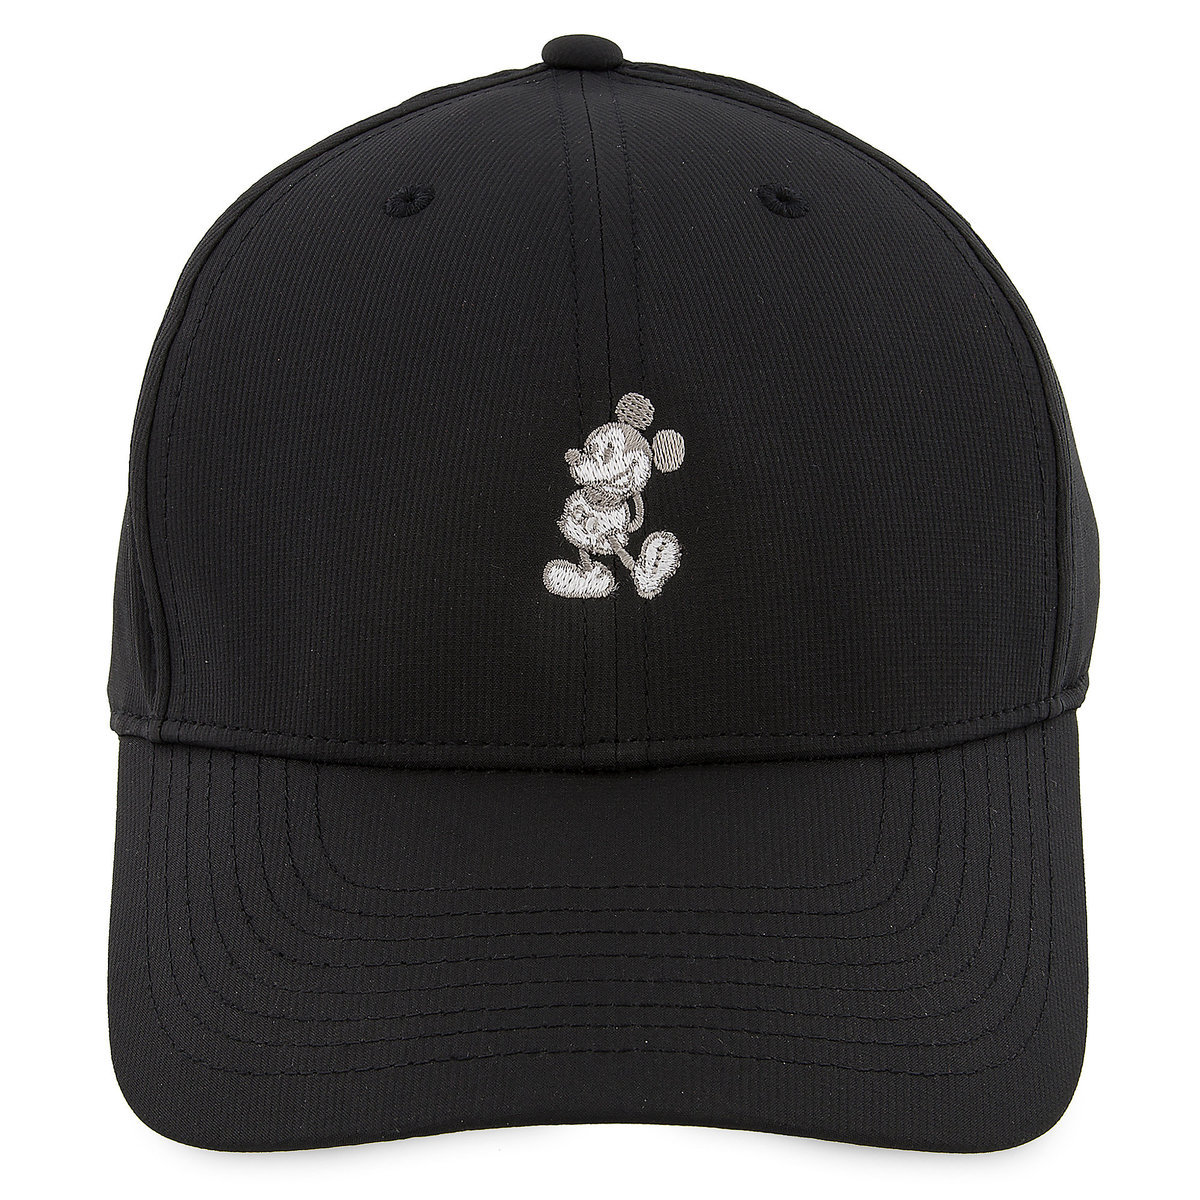 821c92208 Product Image of Mickey Mouse Performance Baseball Cap for Adults by Nike #  1